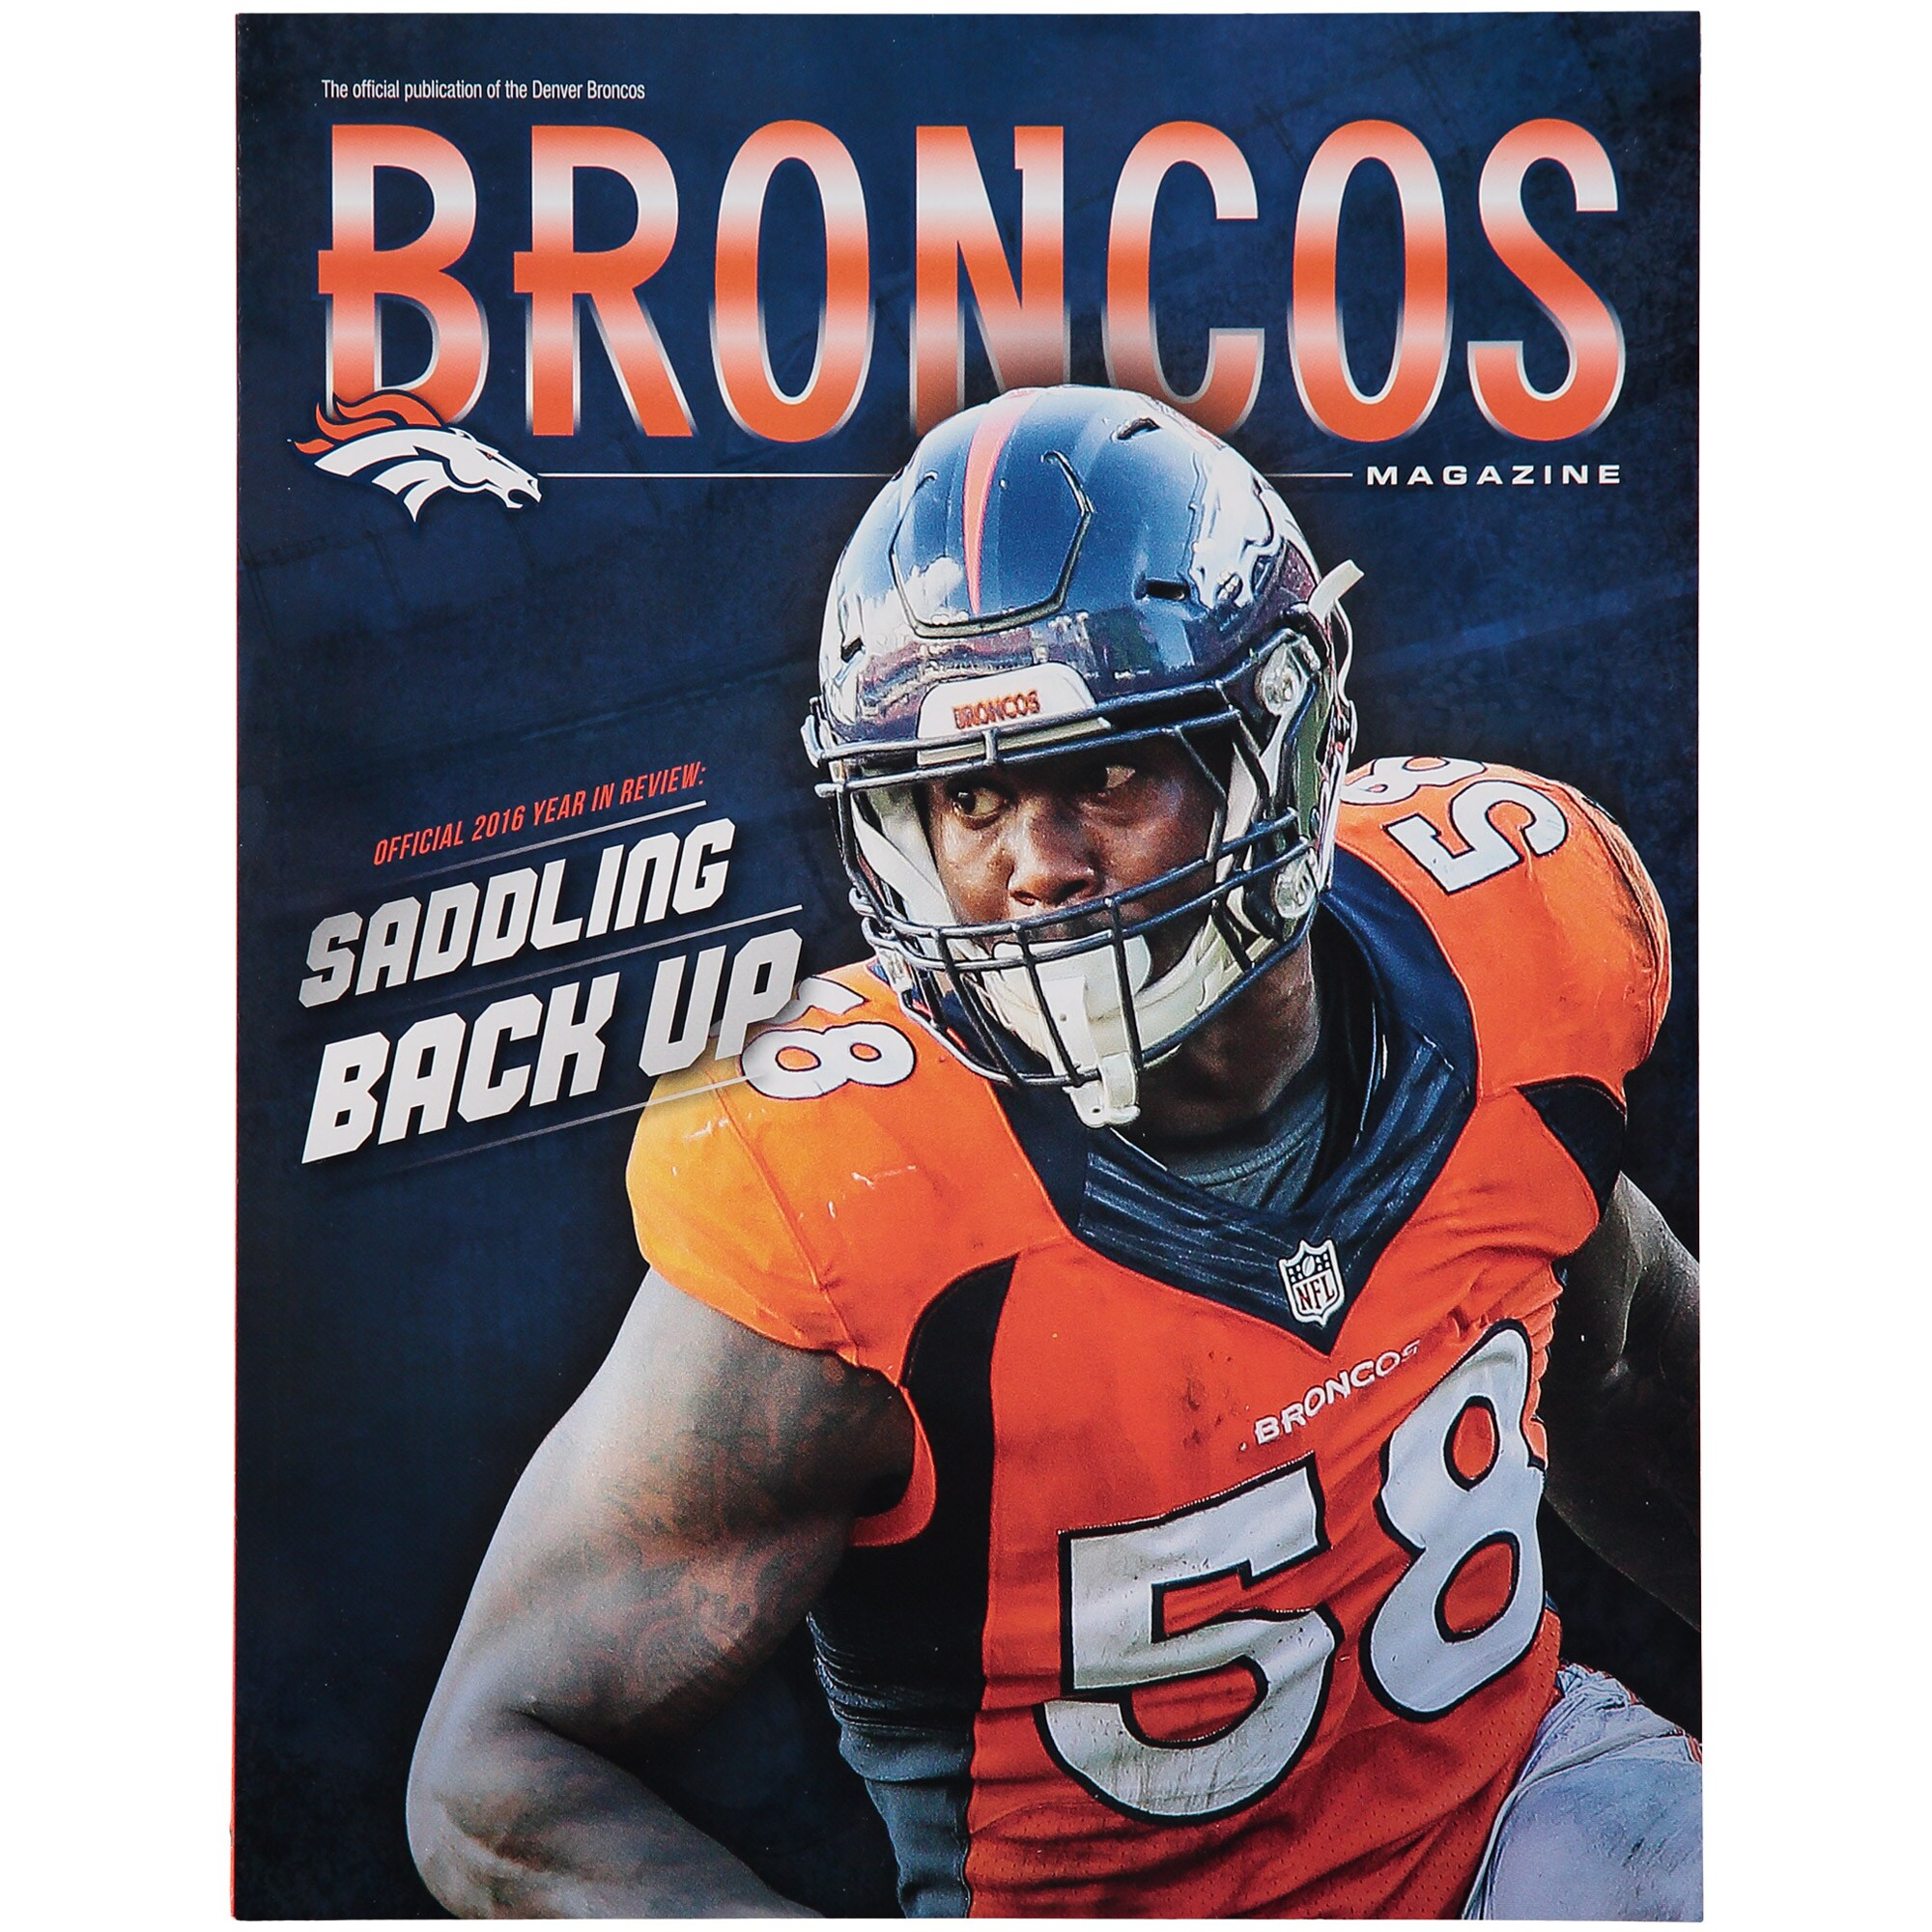 Denver Broncos 2016 Yearbook